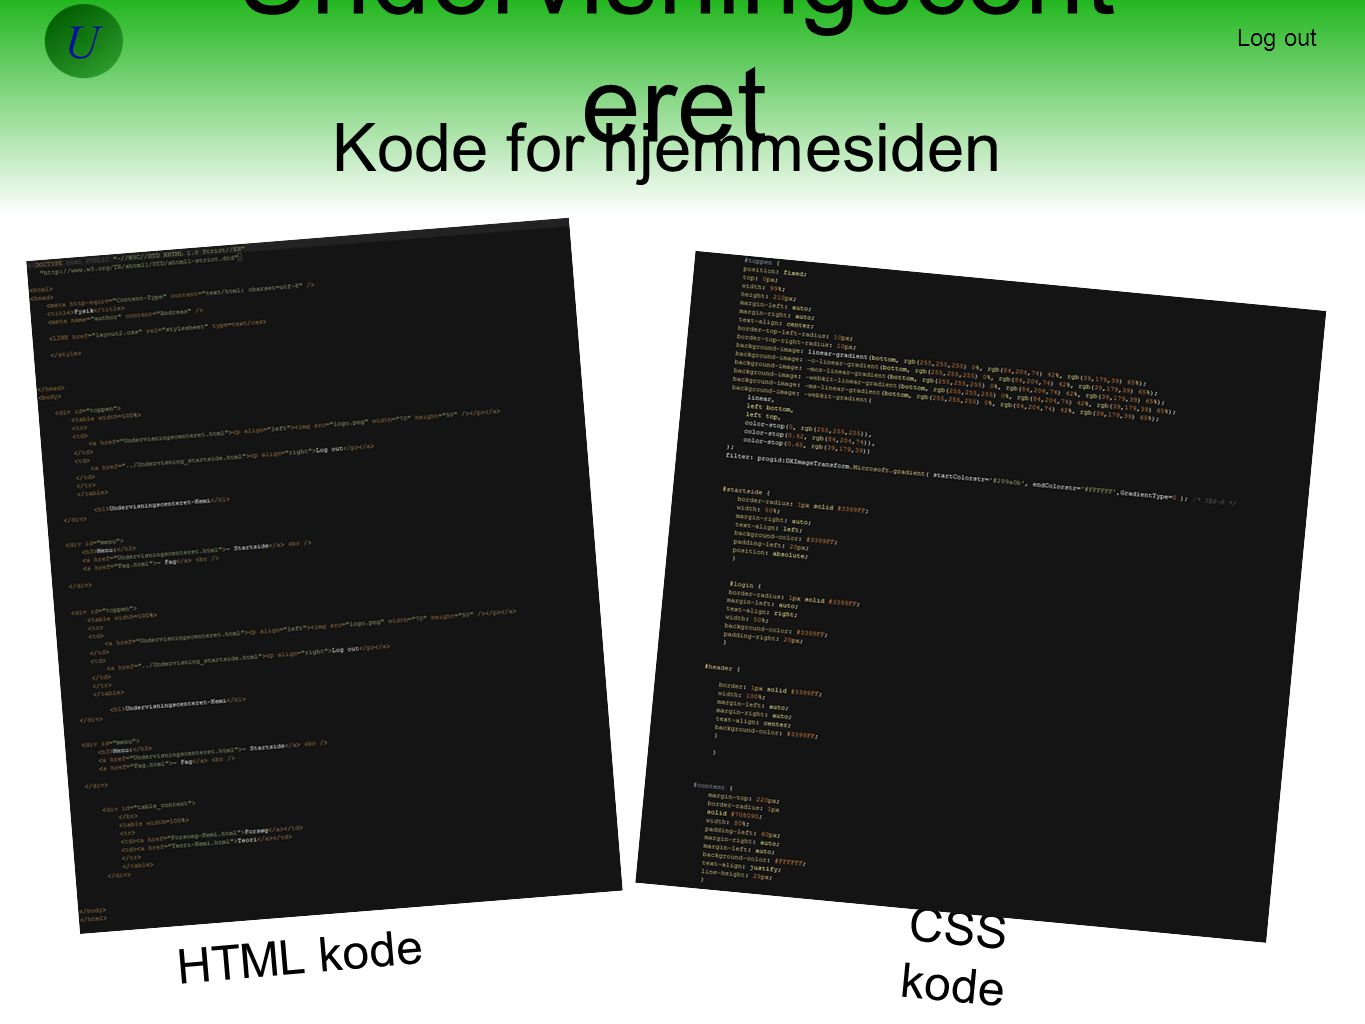 Undervisningscent eret Log out Kode for hjemmesiden HTML kode CSS kode #idnavn { attribut: parameter; }